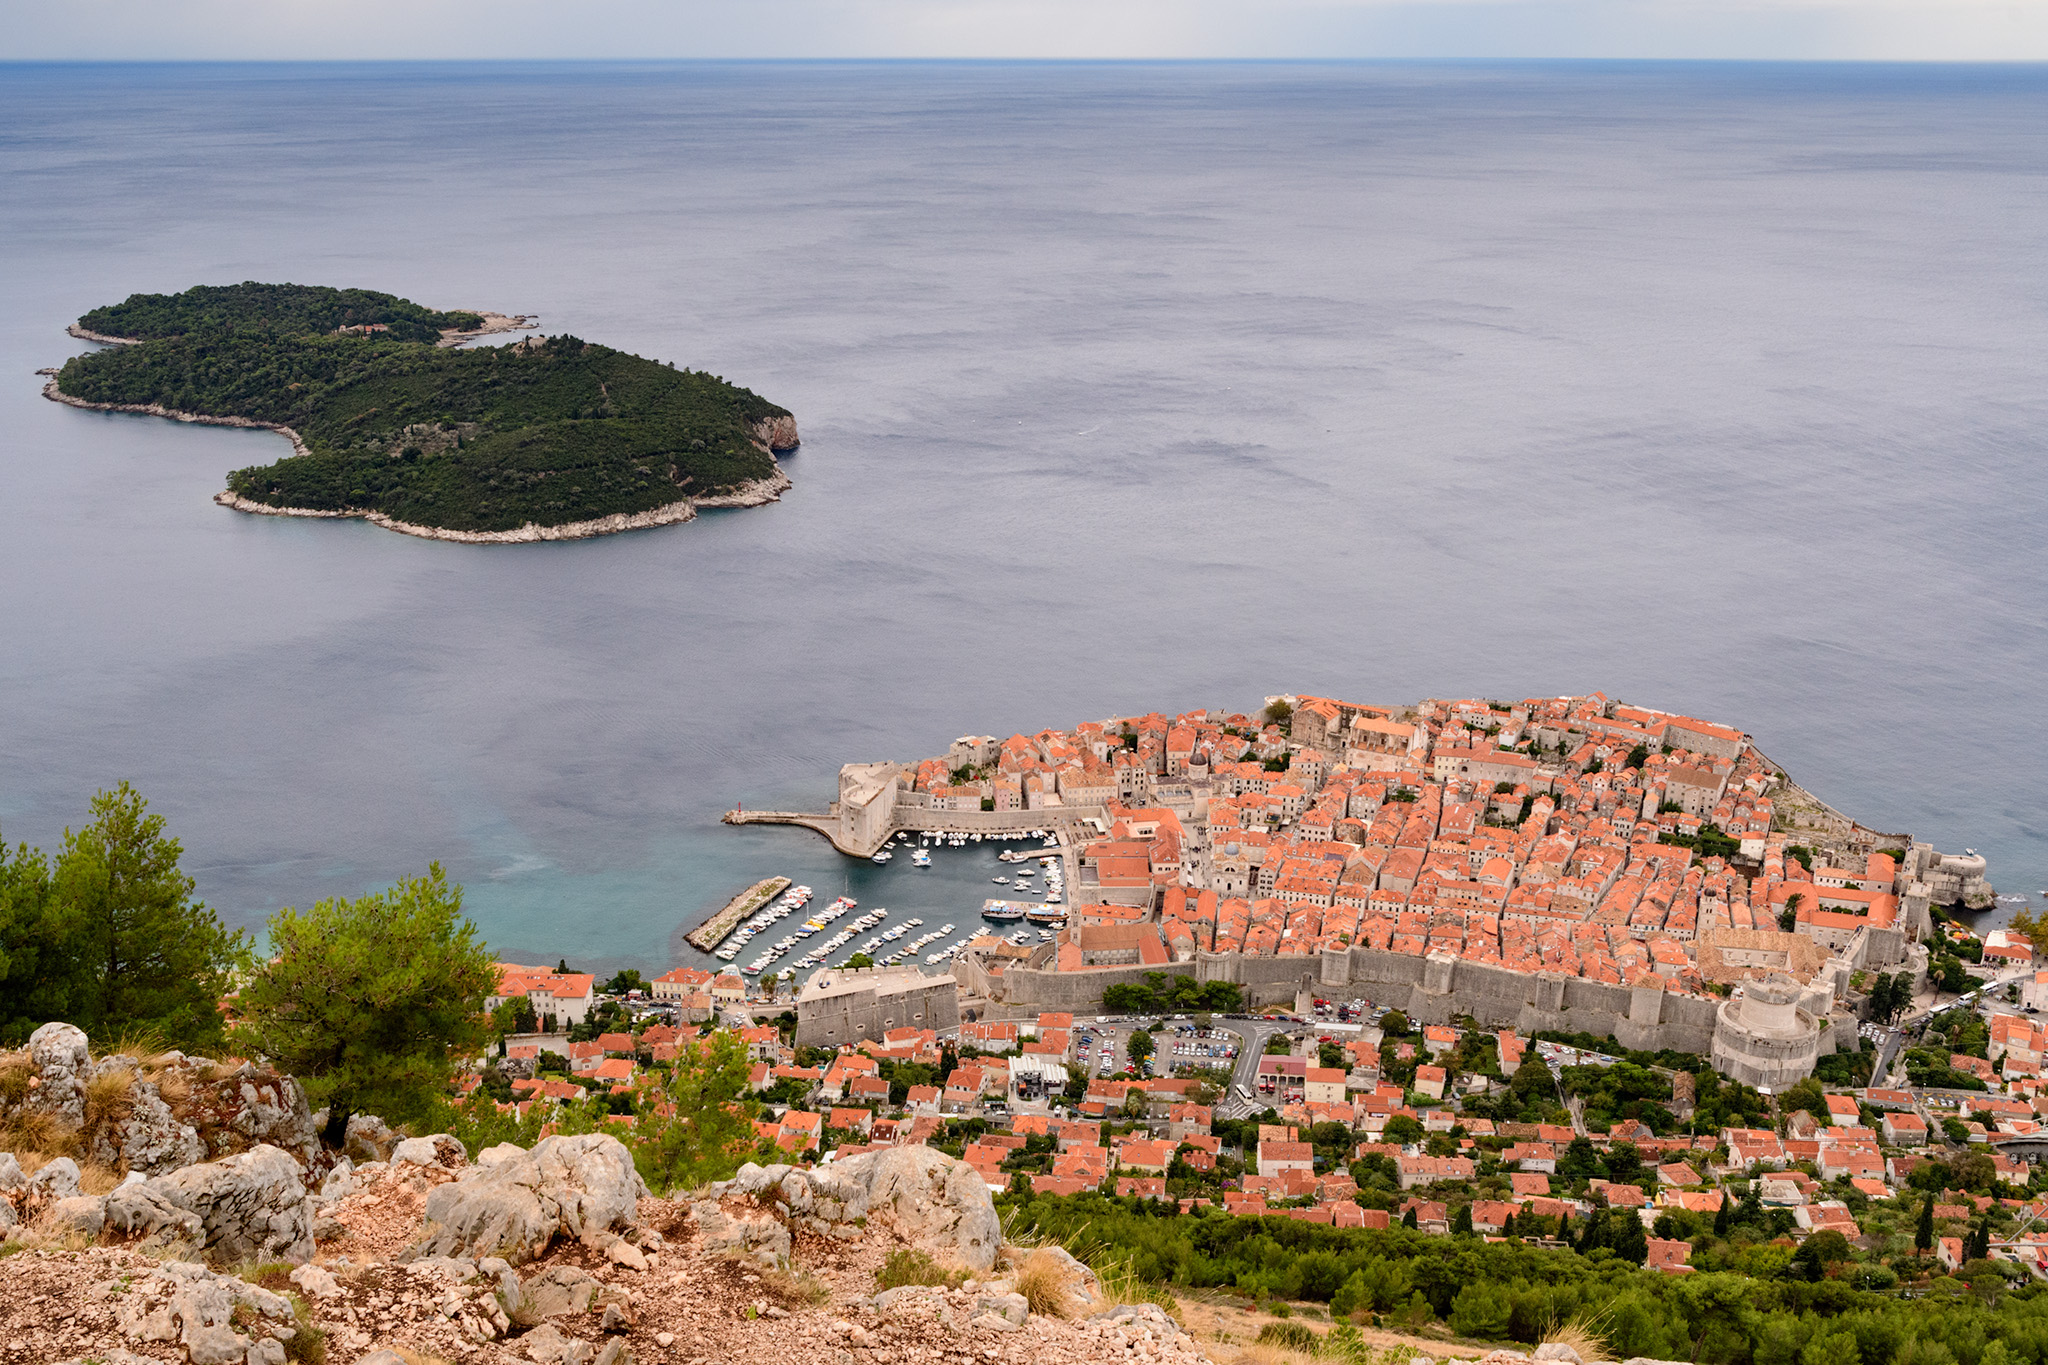 The walled city of Dubrovnik in the Adriatic with the famous red terracotta roofs.